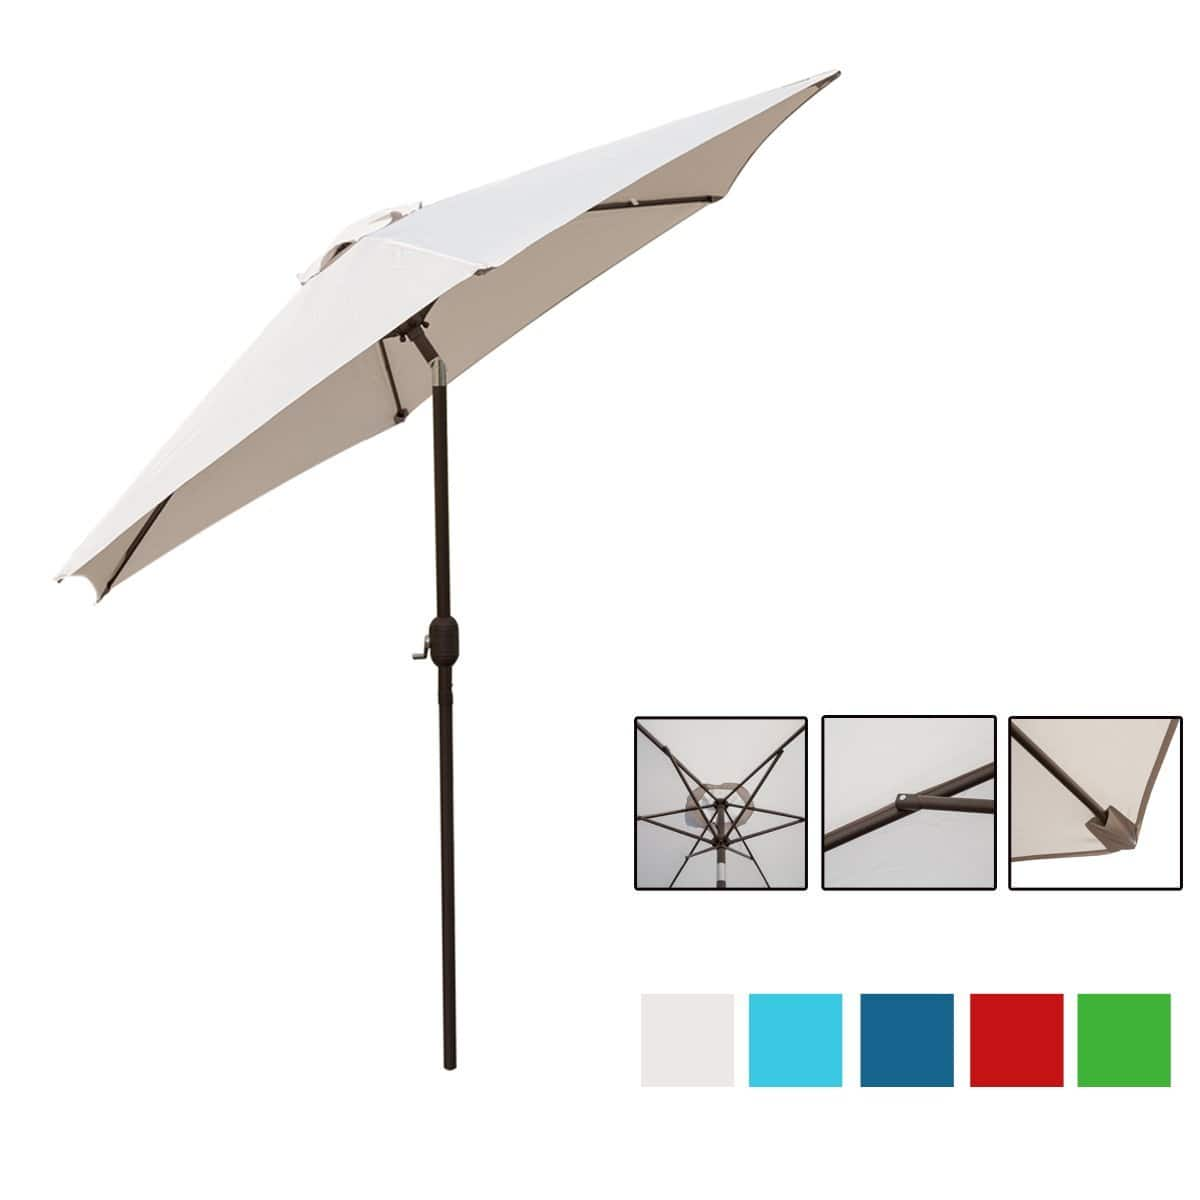 9 Ft UV Protective Patio Umbrella 65% off (various color) $17.46